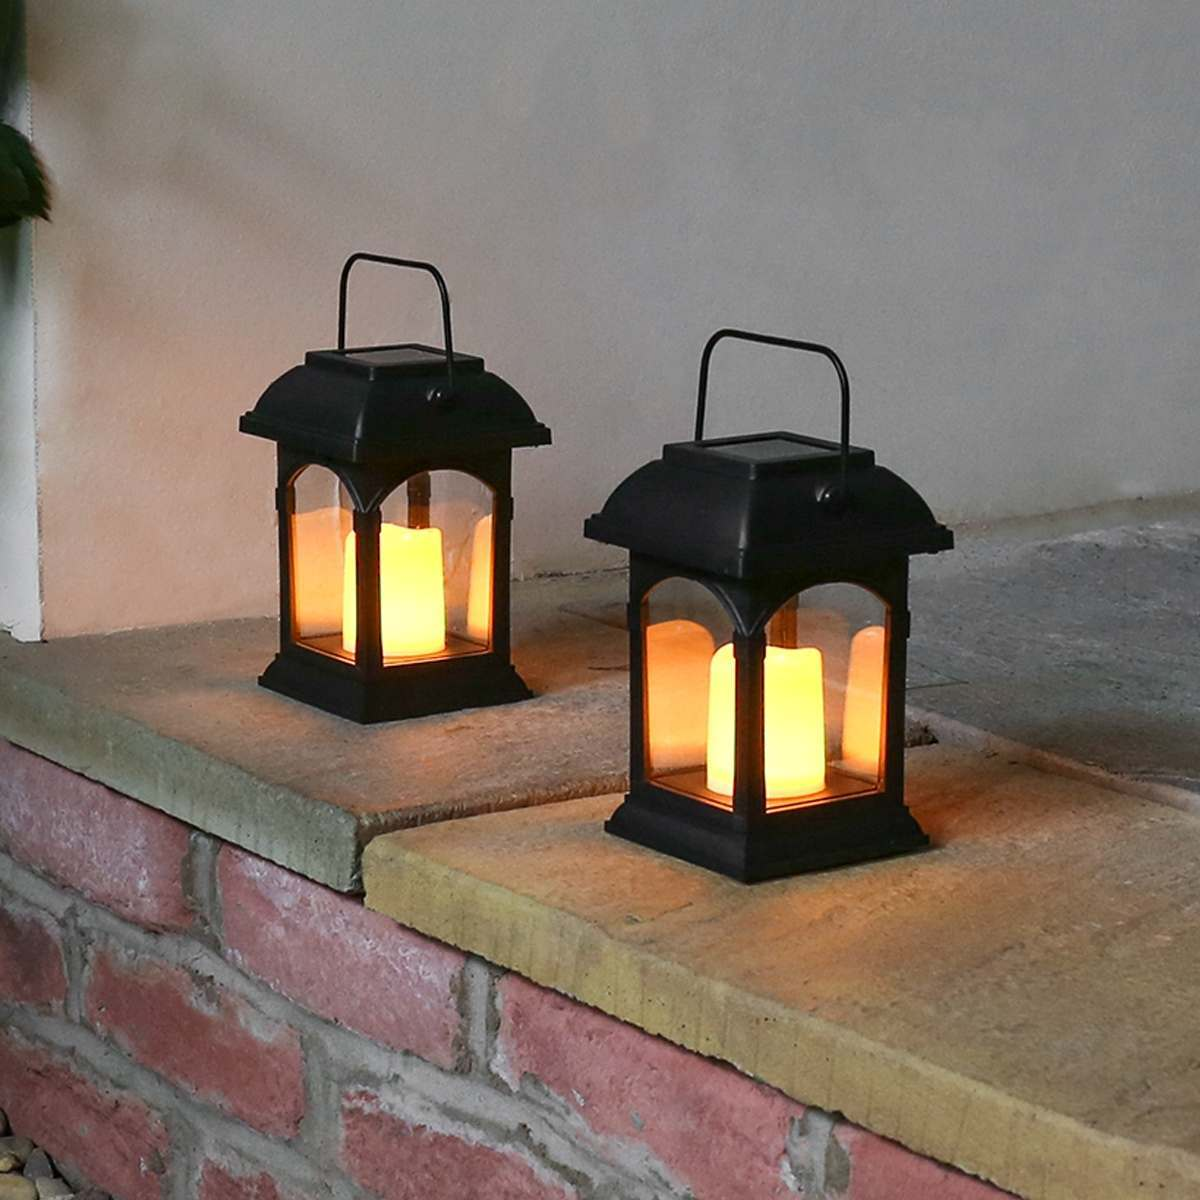 solar powered flickering led candle lantern 2 pack. Black Bedroom Furniture Sets. Home Design Ideas